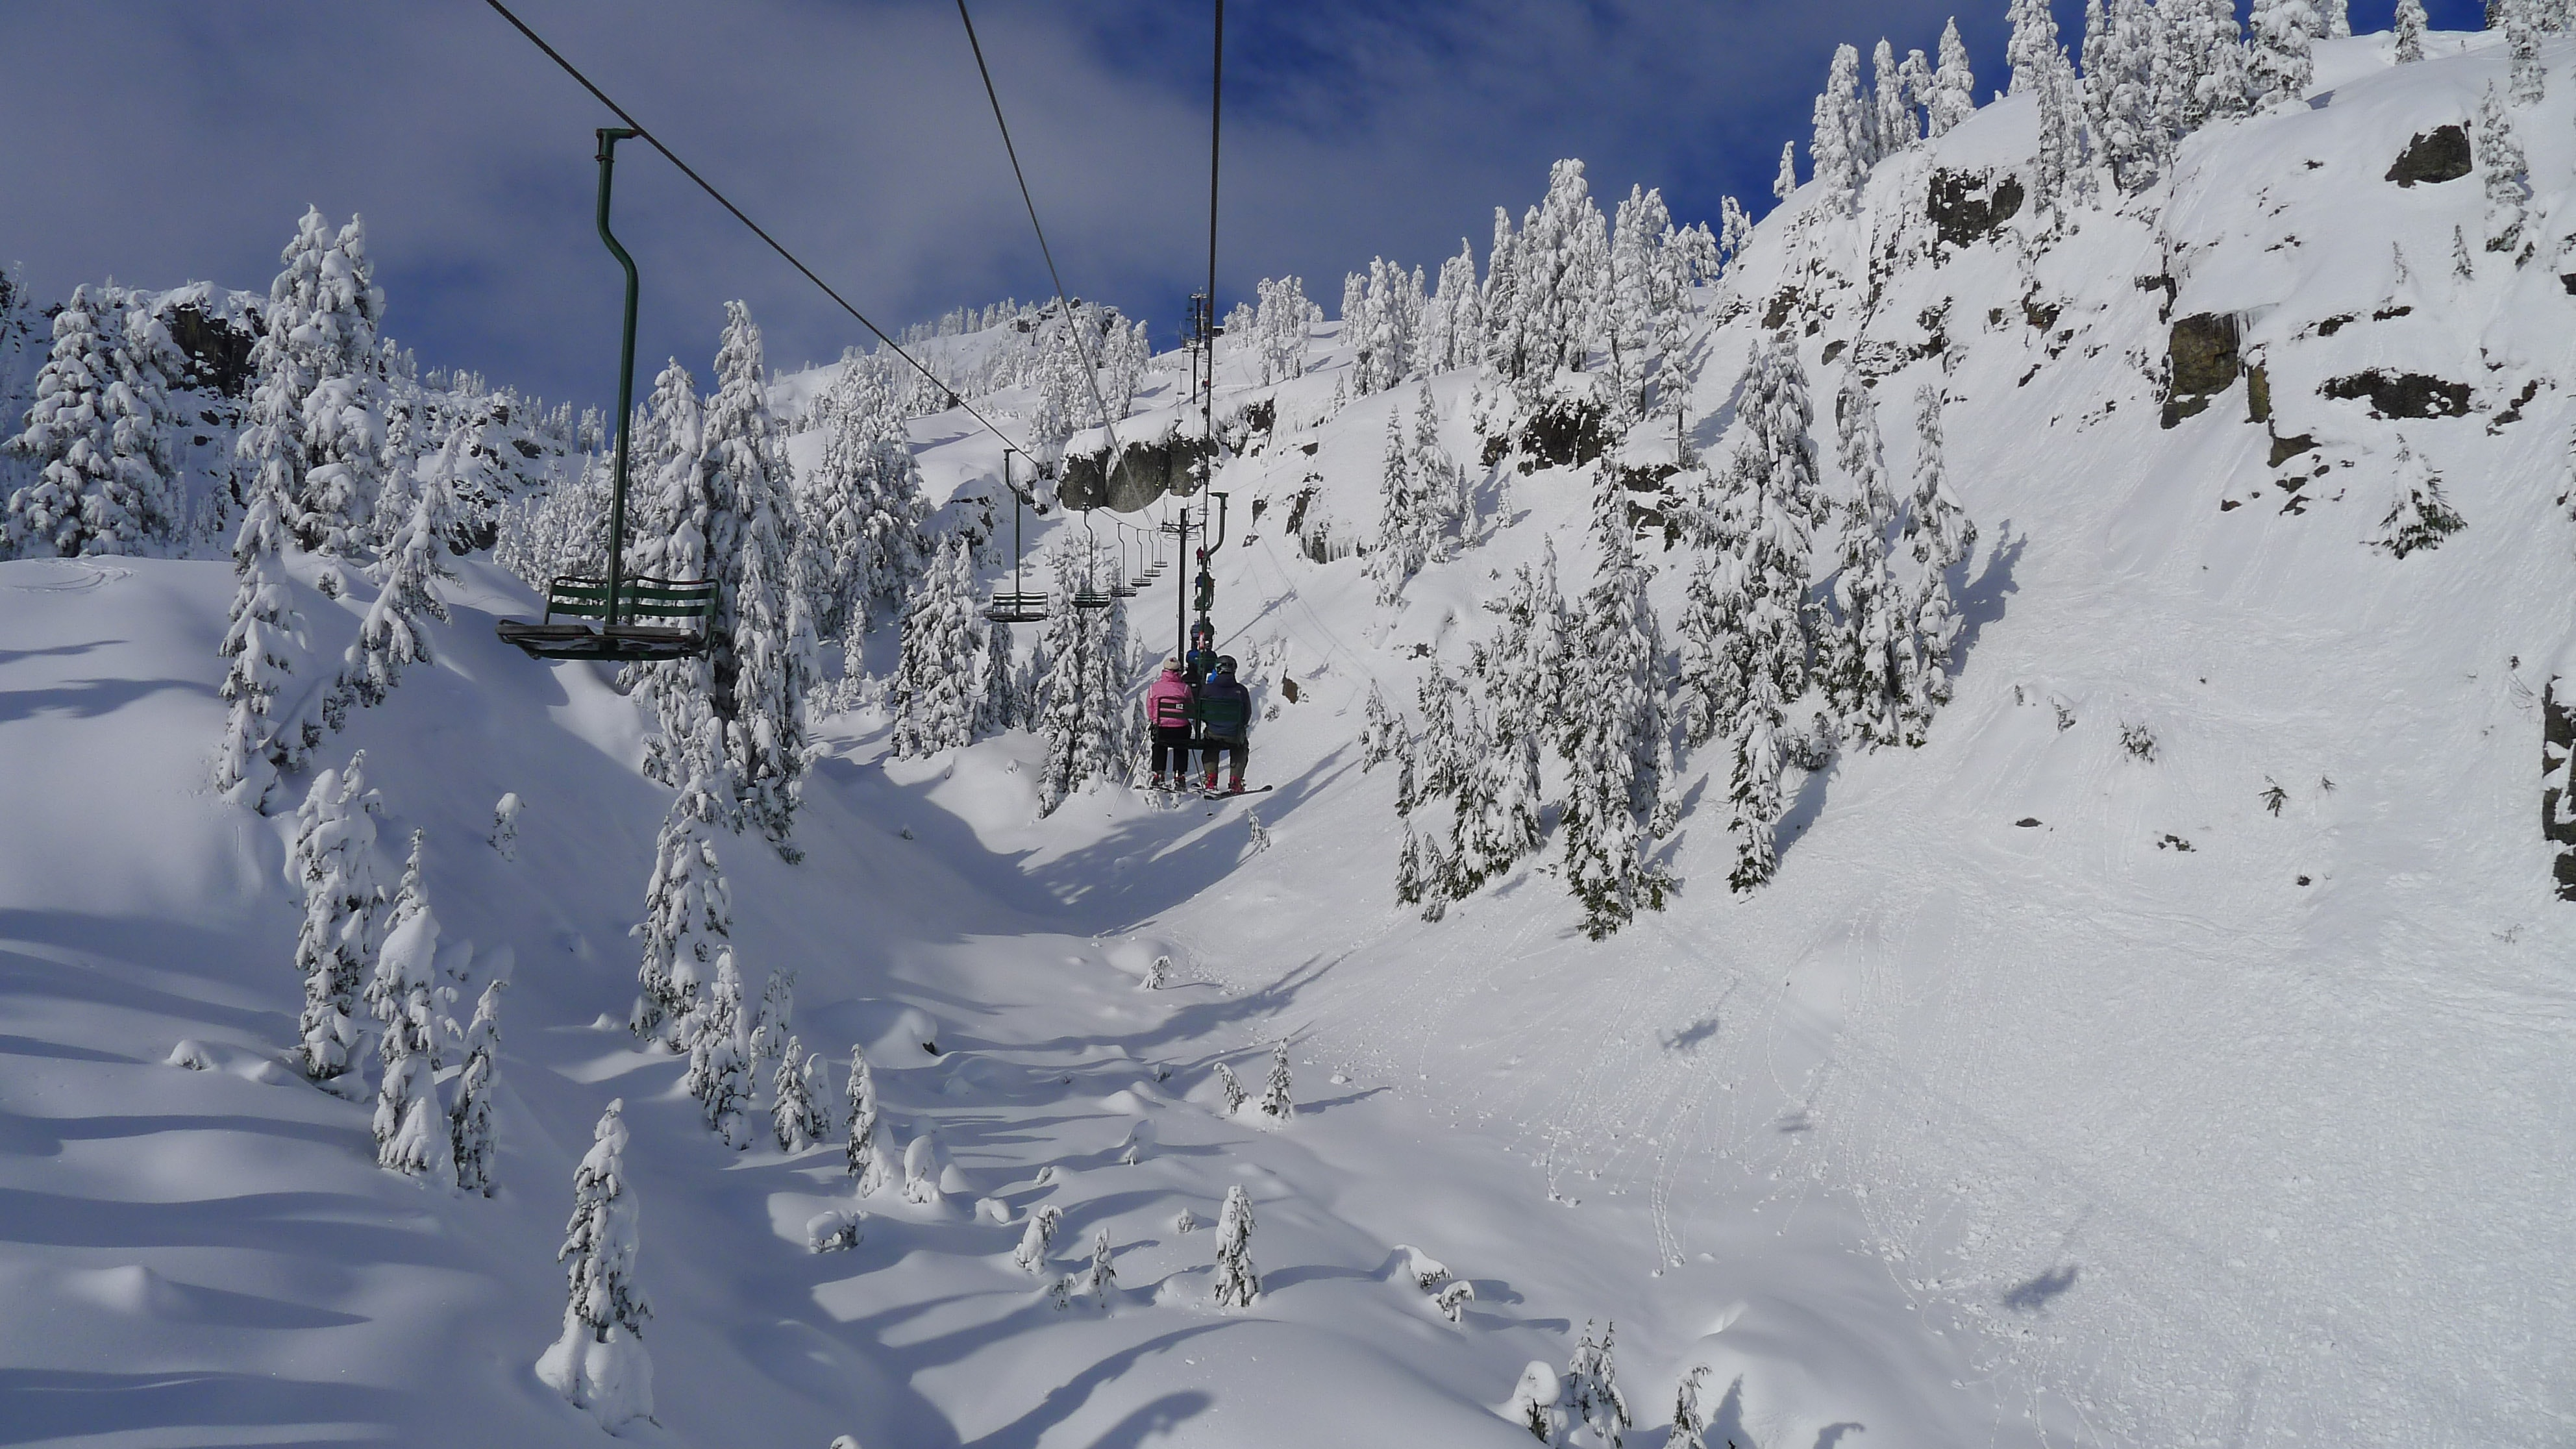 No need to worry about rippers and shredders whizzing by you at lightening speeds at Colorado's Copper Mountain where the green runs are on the complete opposite side of the mountain as the black diamonds.